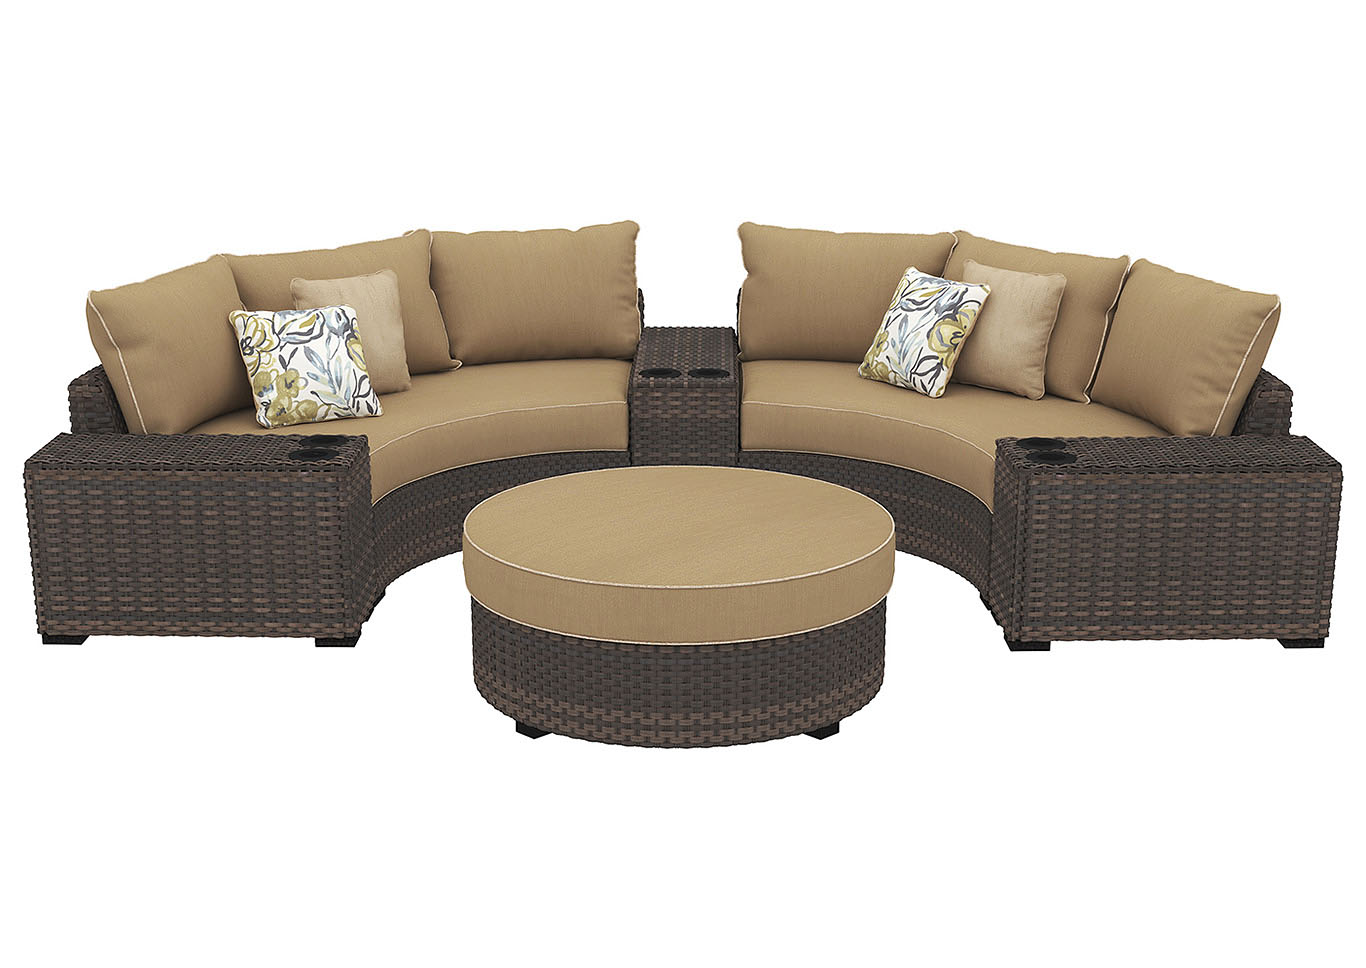 Spring Ridge Beige/Brown Sectional w/Consoles & Ottoman,Outdoor By Ashley